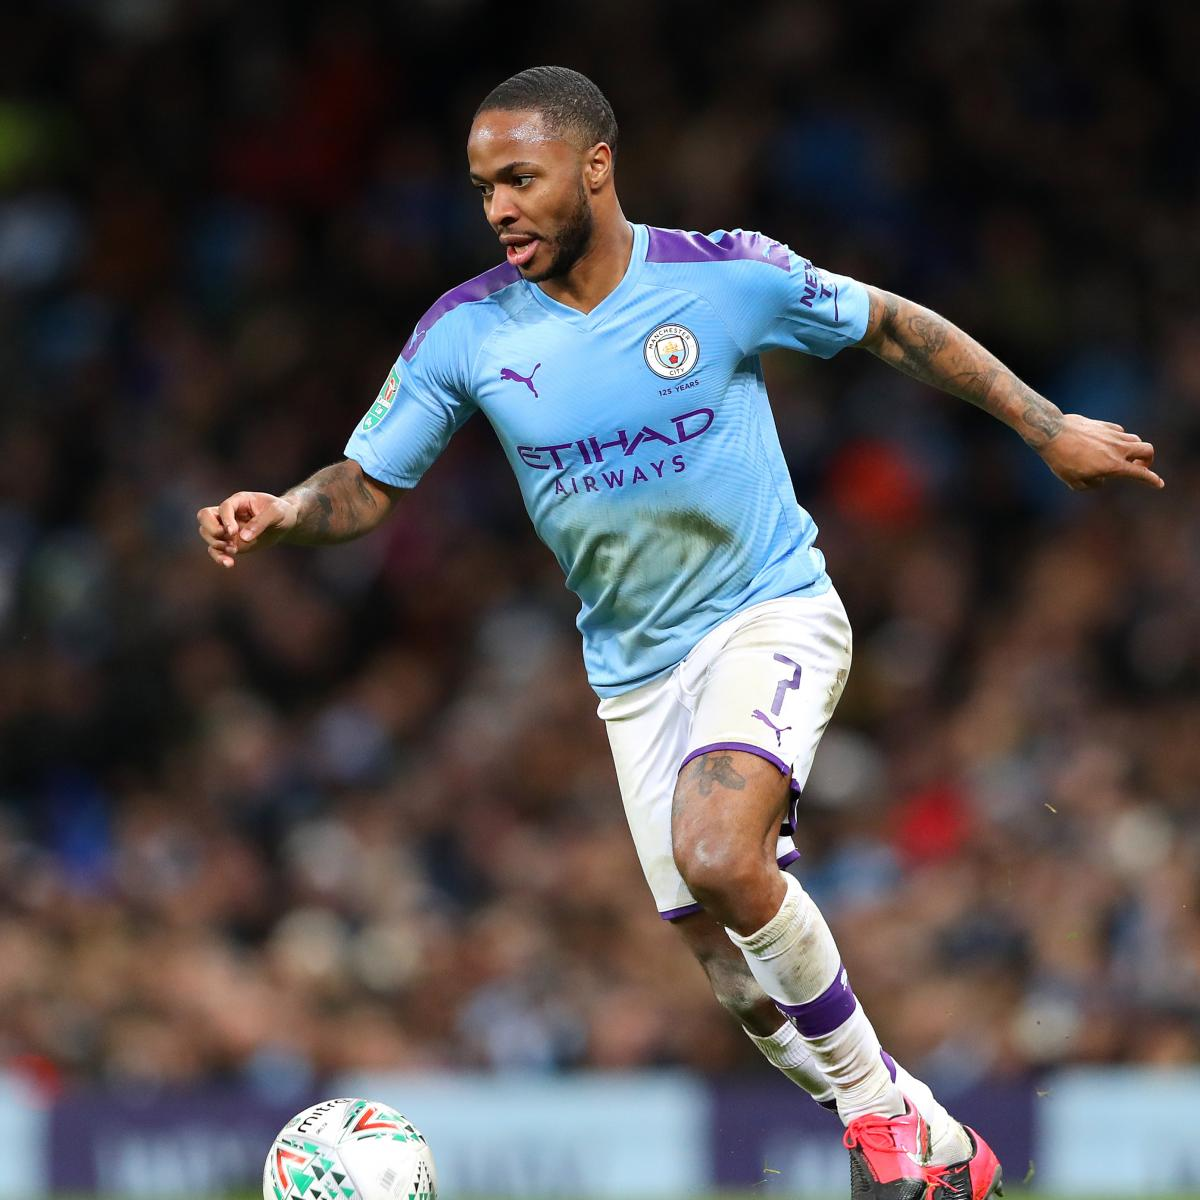 Raheem Sterling Hints He'd Be Open to Joining Real Madrid 'In the Future'